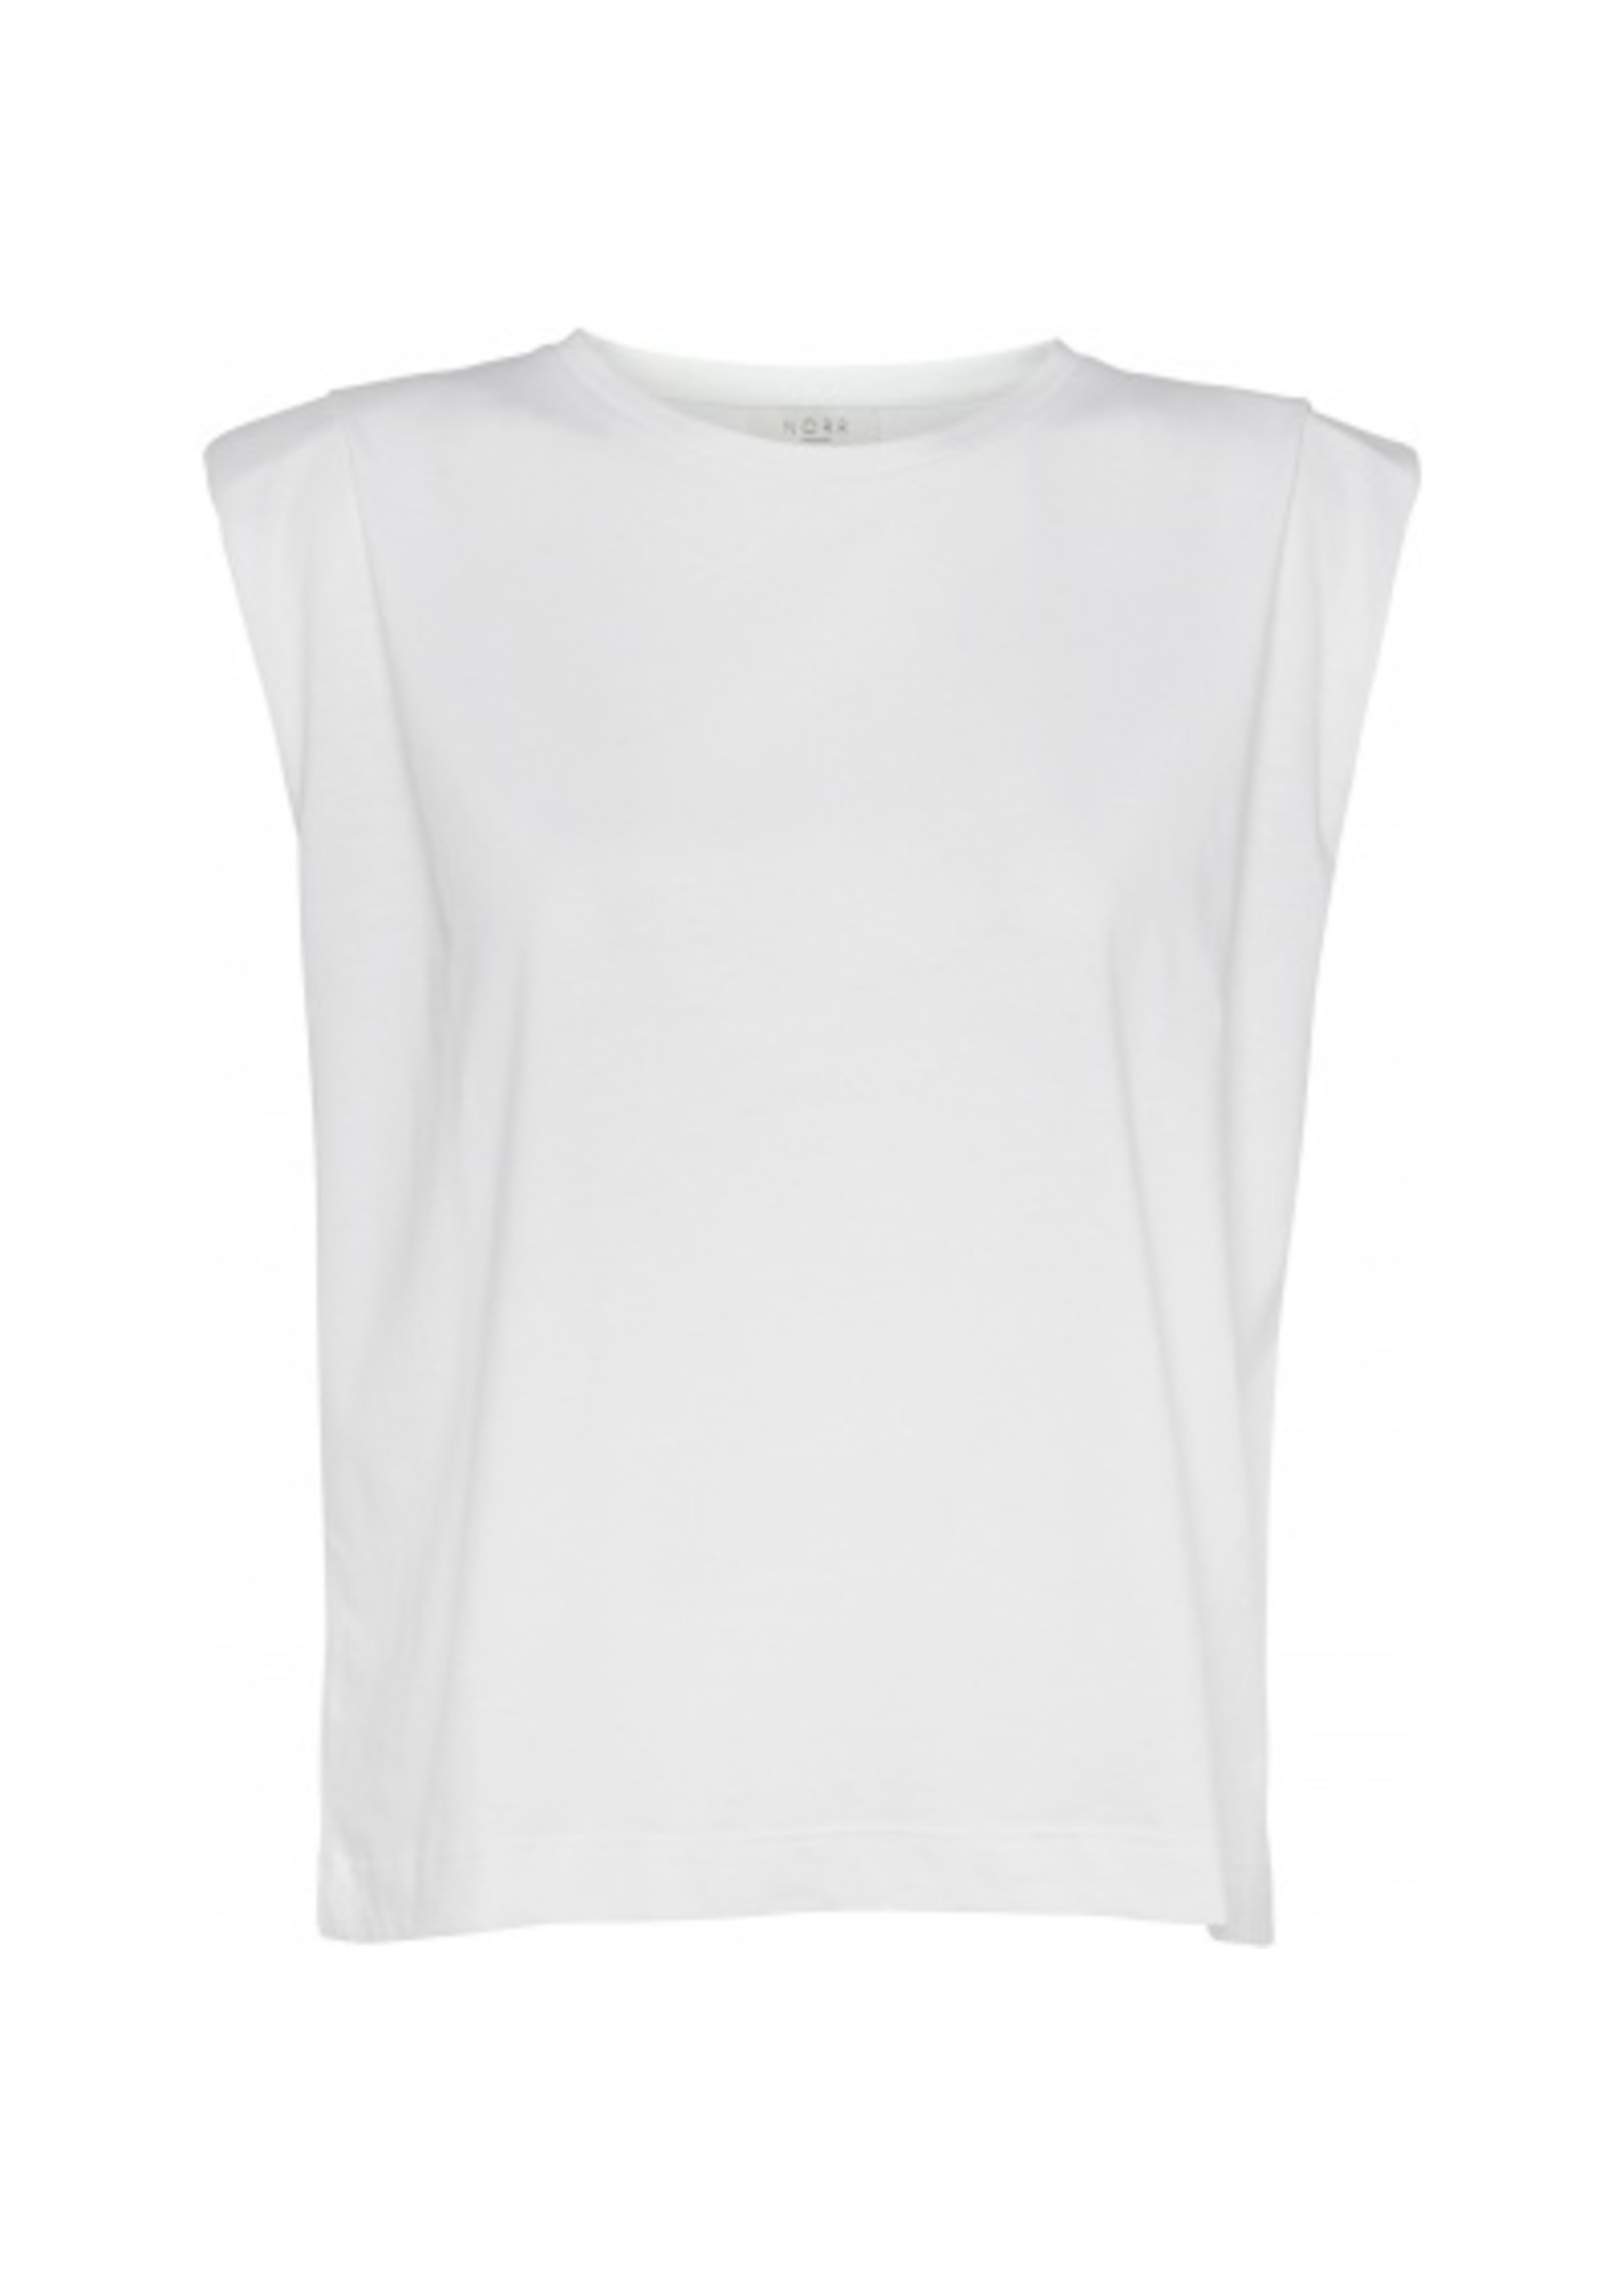 MUSCLE TEE (2 COLORS)